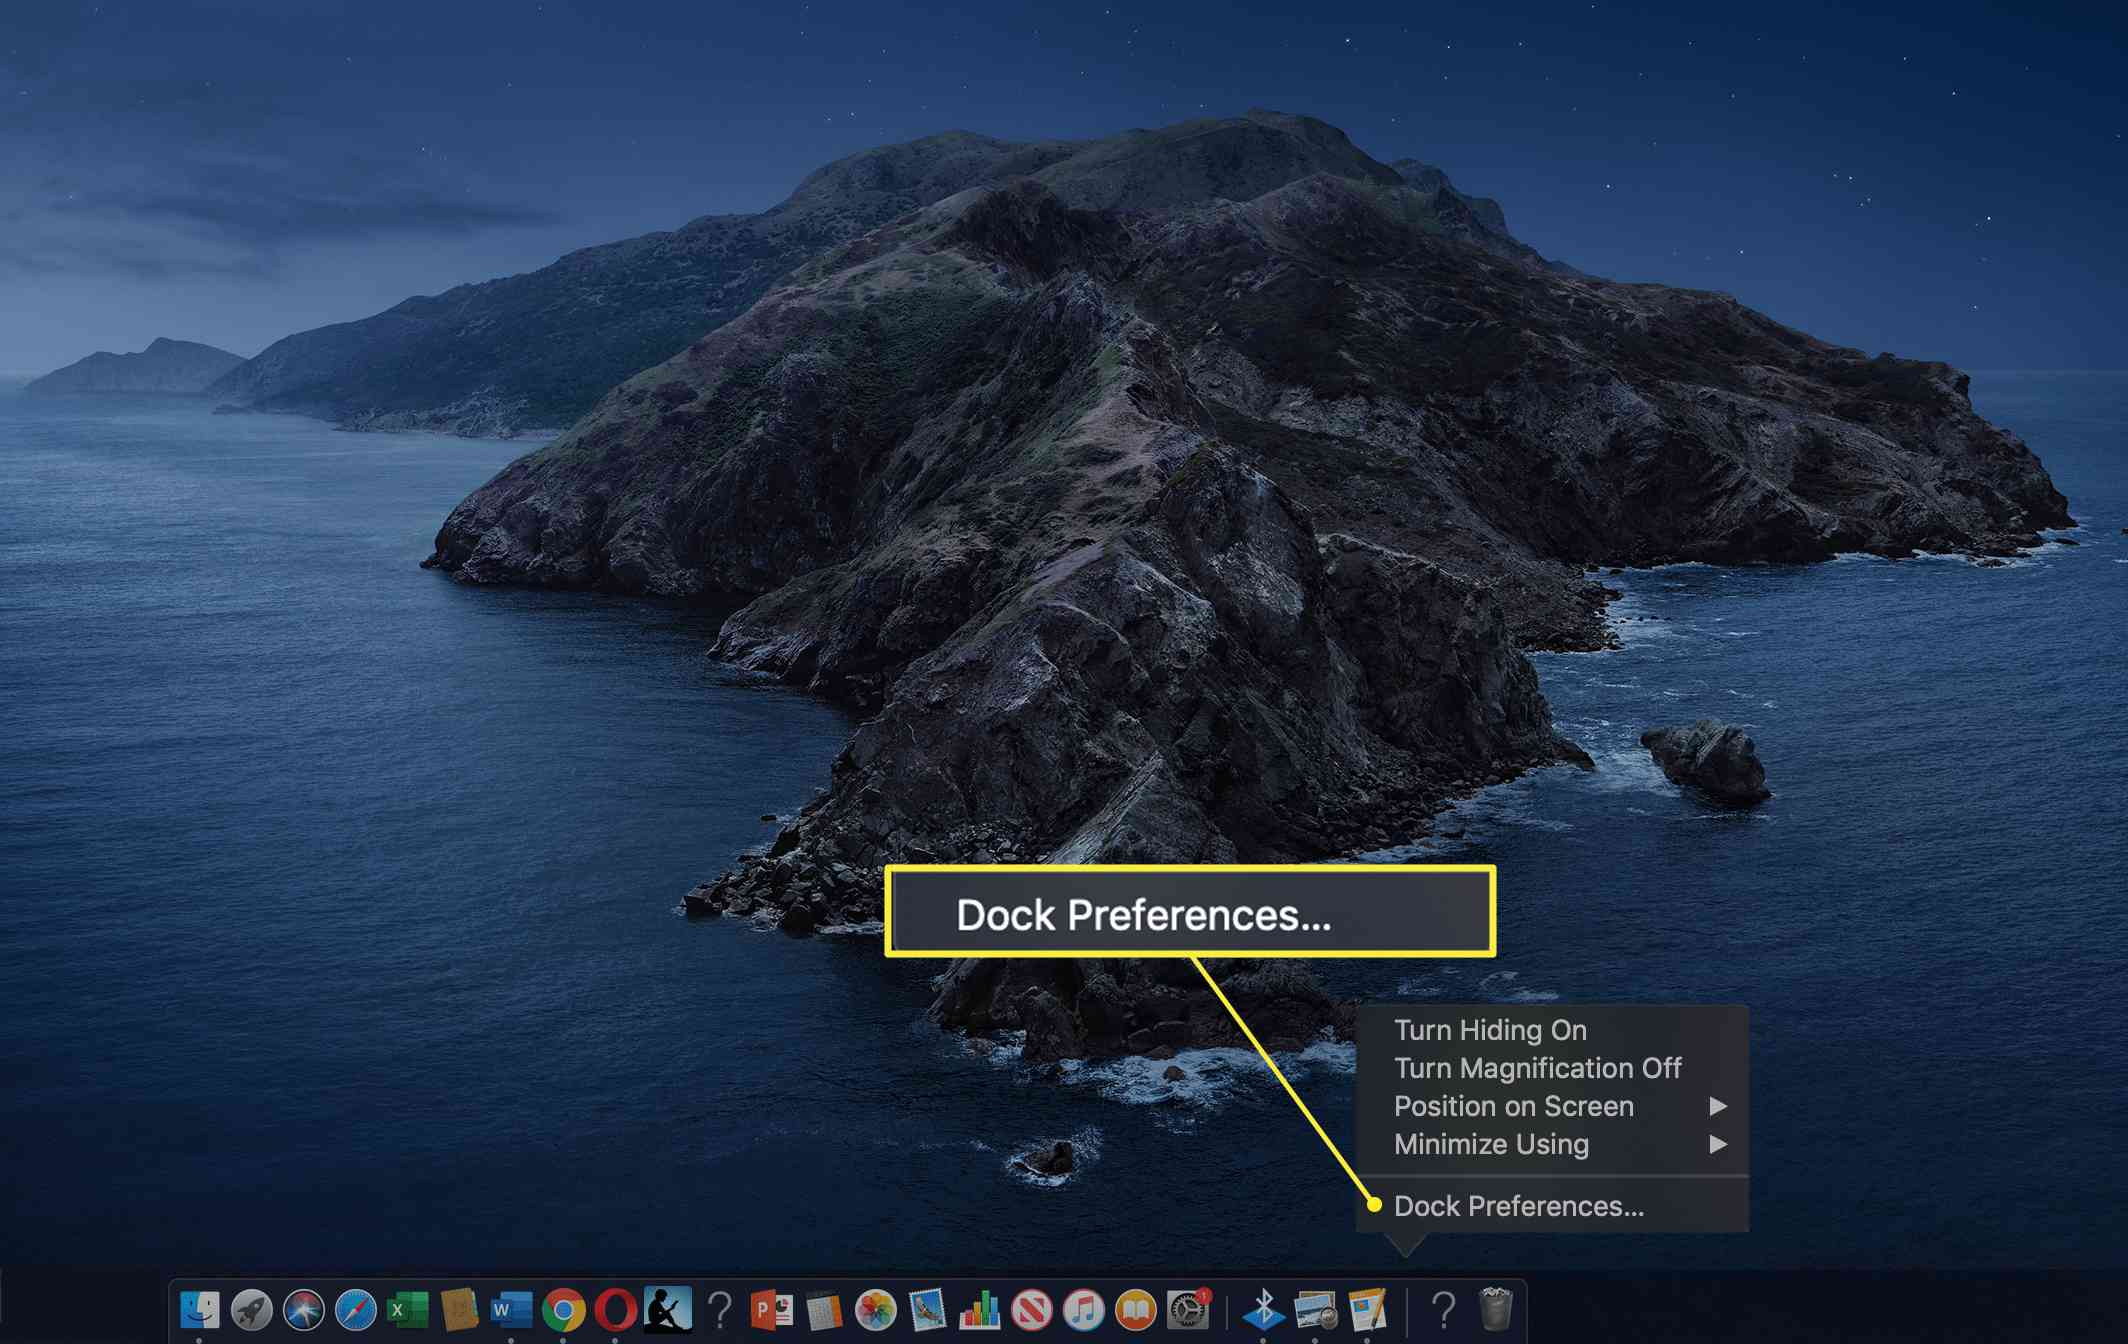 The path to the Dock Preferences on a Mac